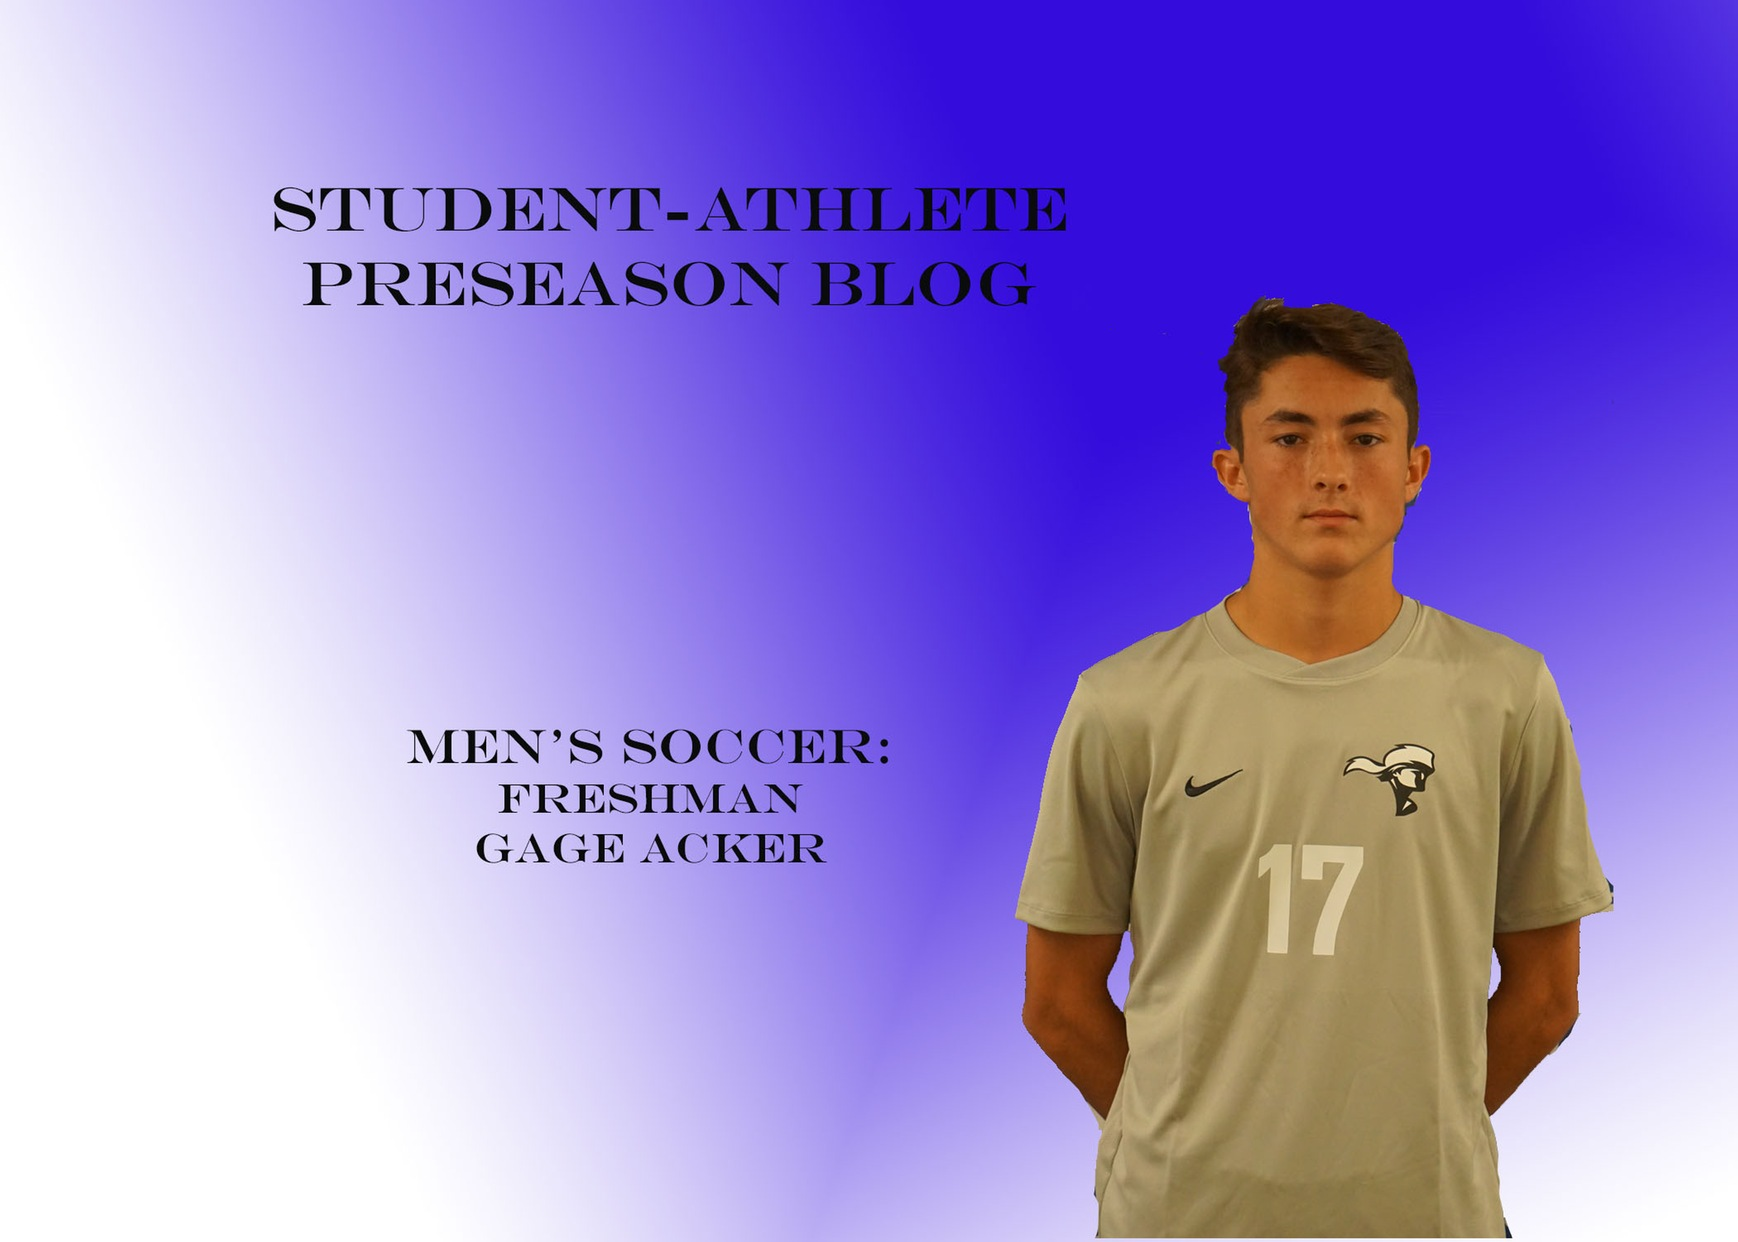 Day Seven: Student-Athlete Blog